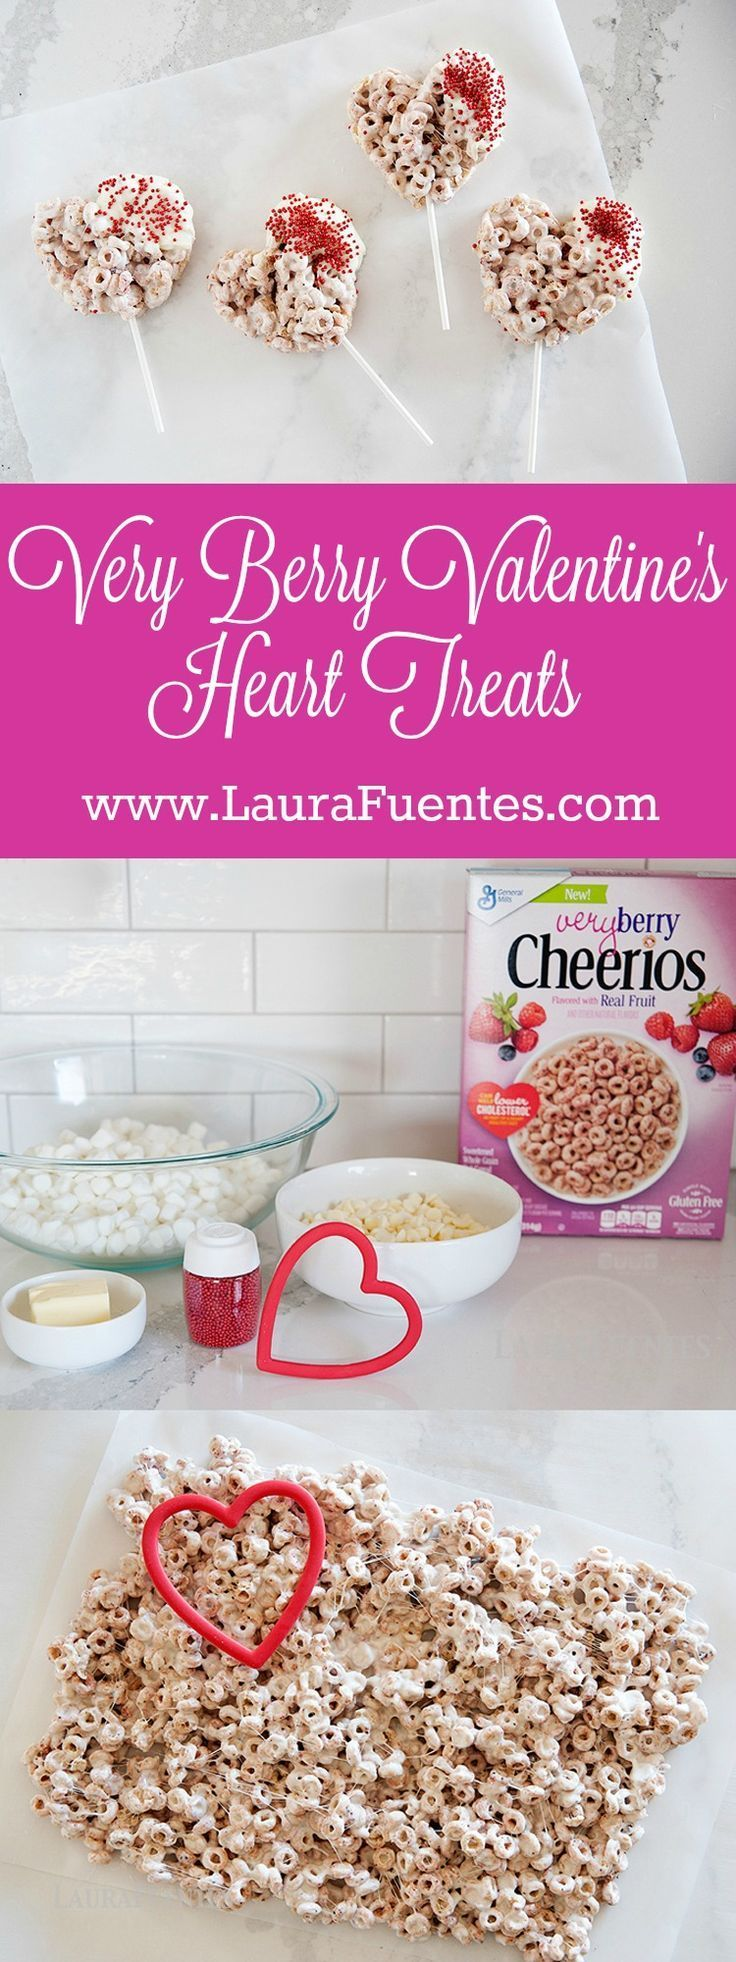 1000 images about kid friendly valentine 39 s day on for Kid friendly valentine recipes